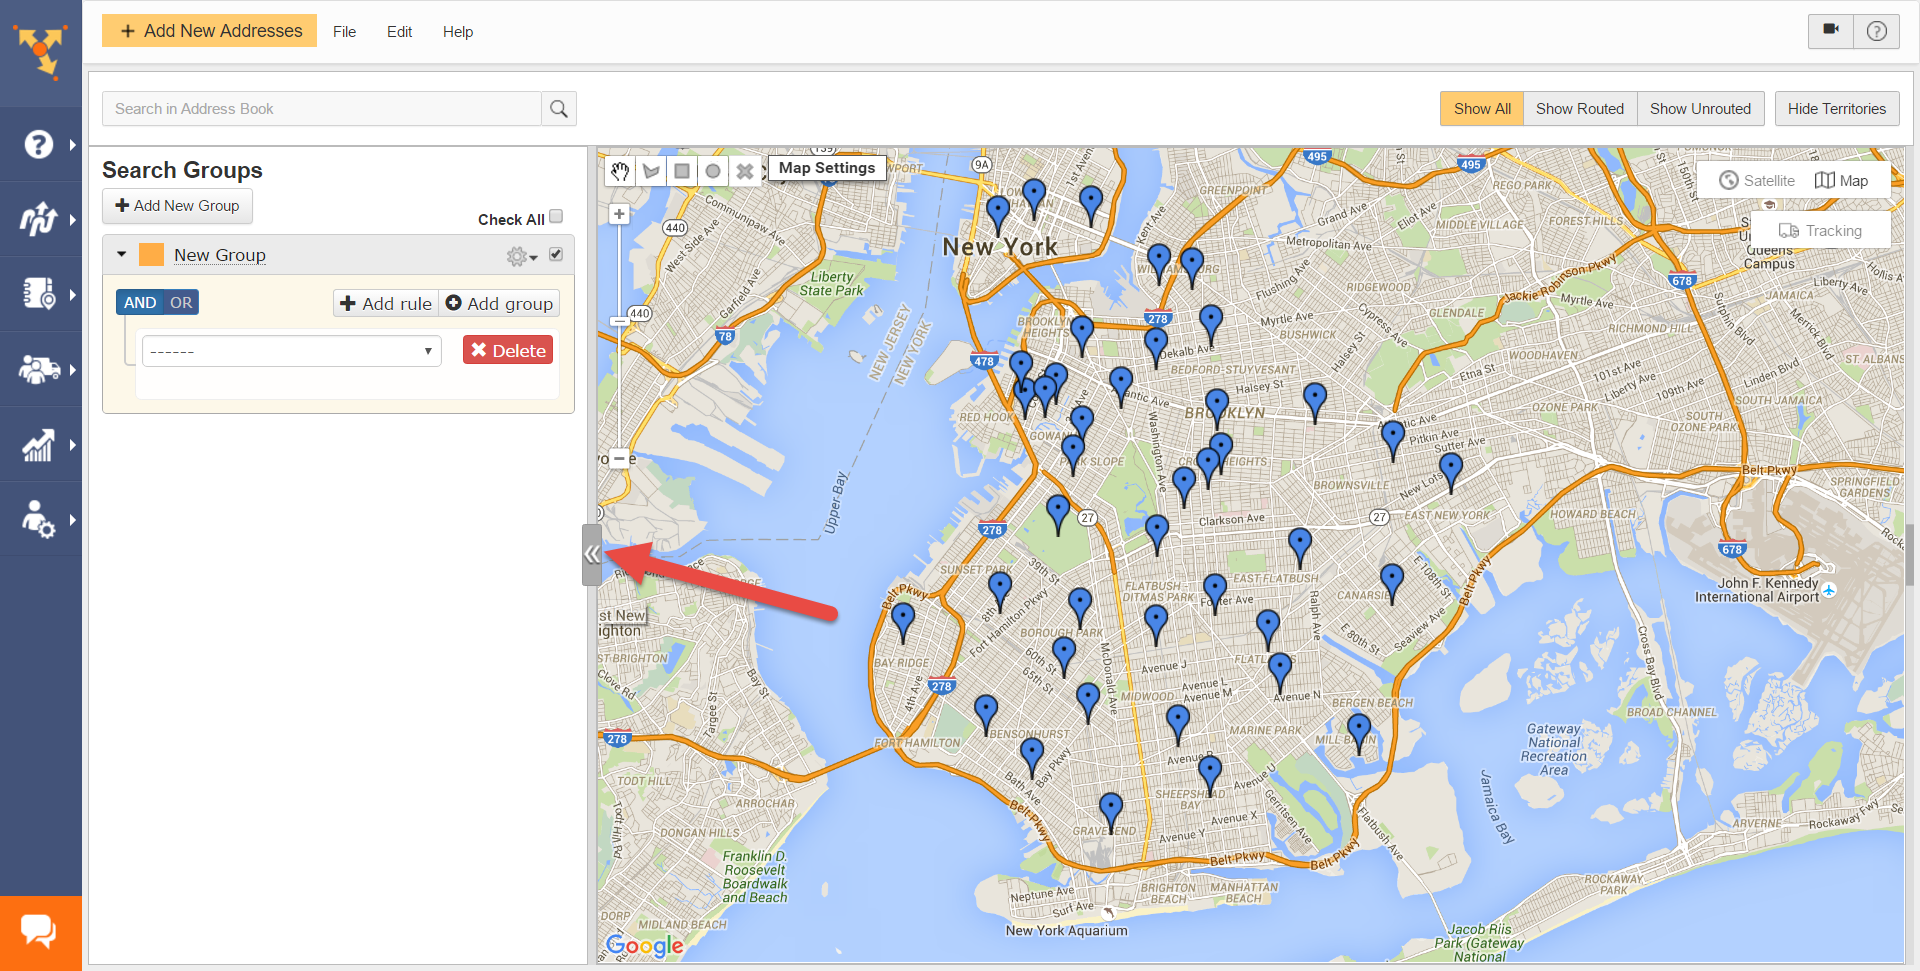 Route4Me as map route planner filters contacts using search groups